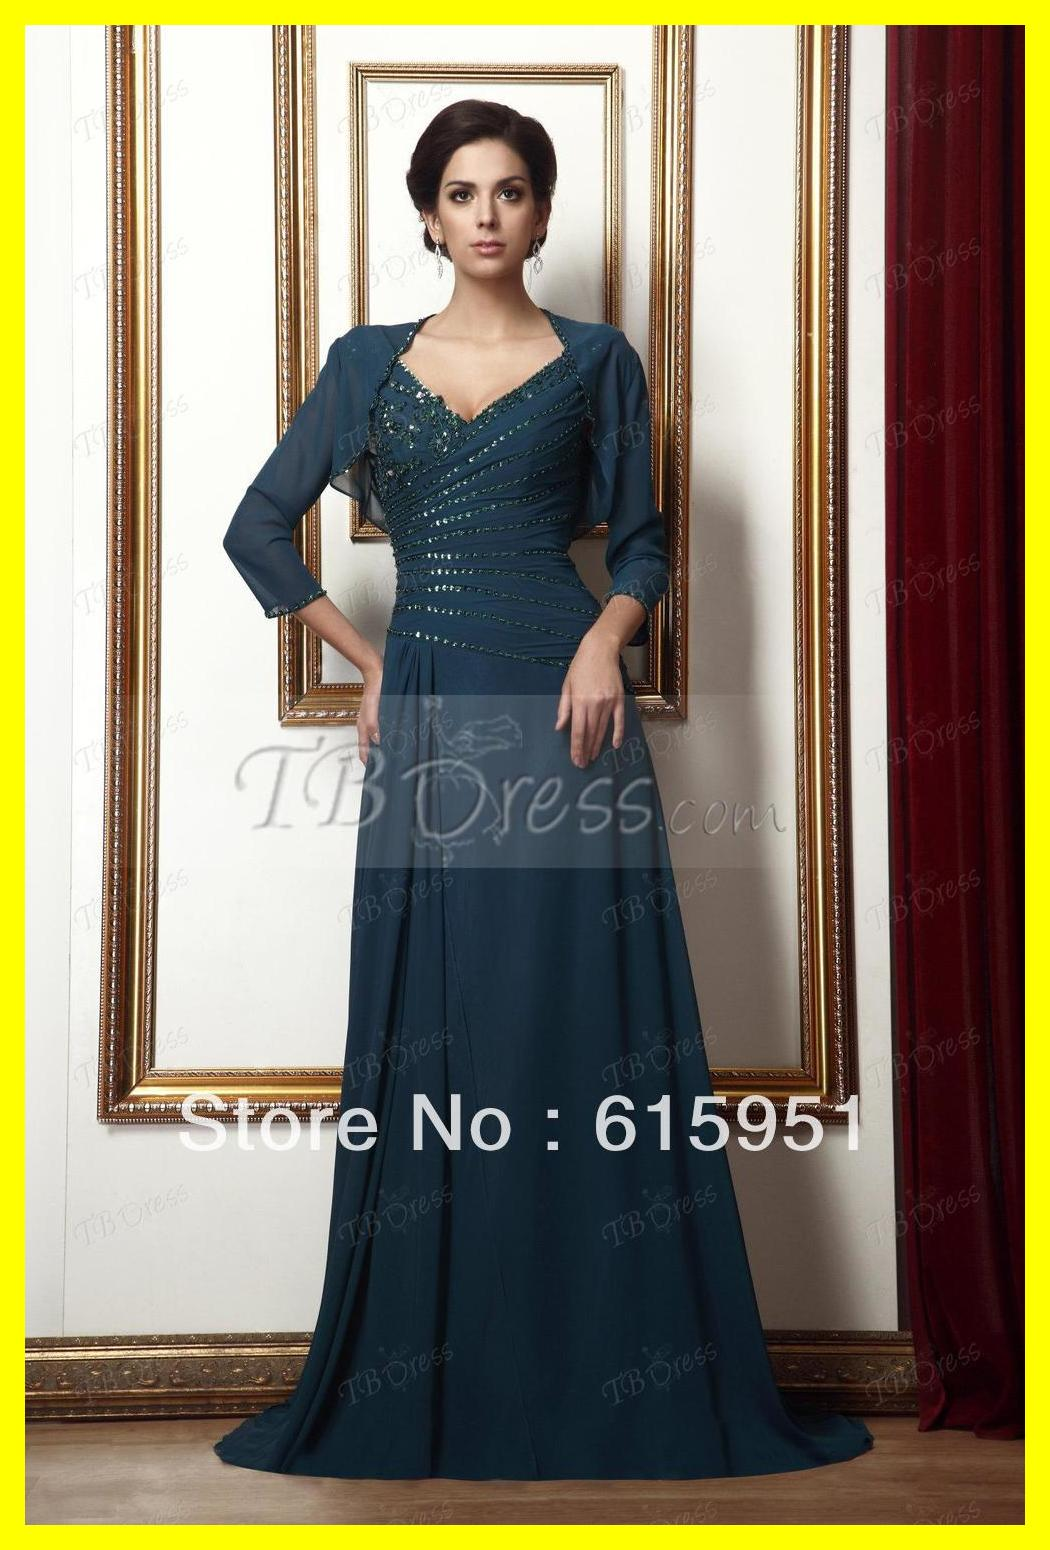 Where To Buy Mother Of The Bride Dresses In Denver 83